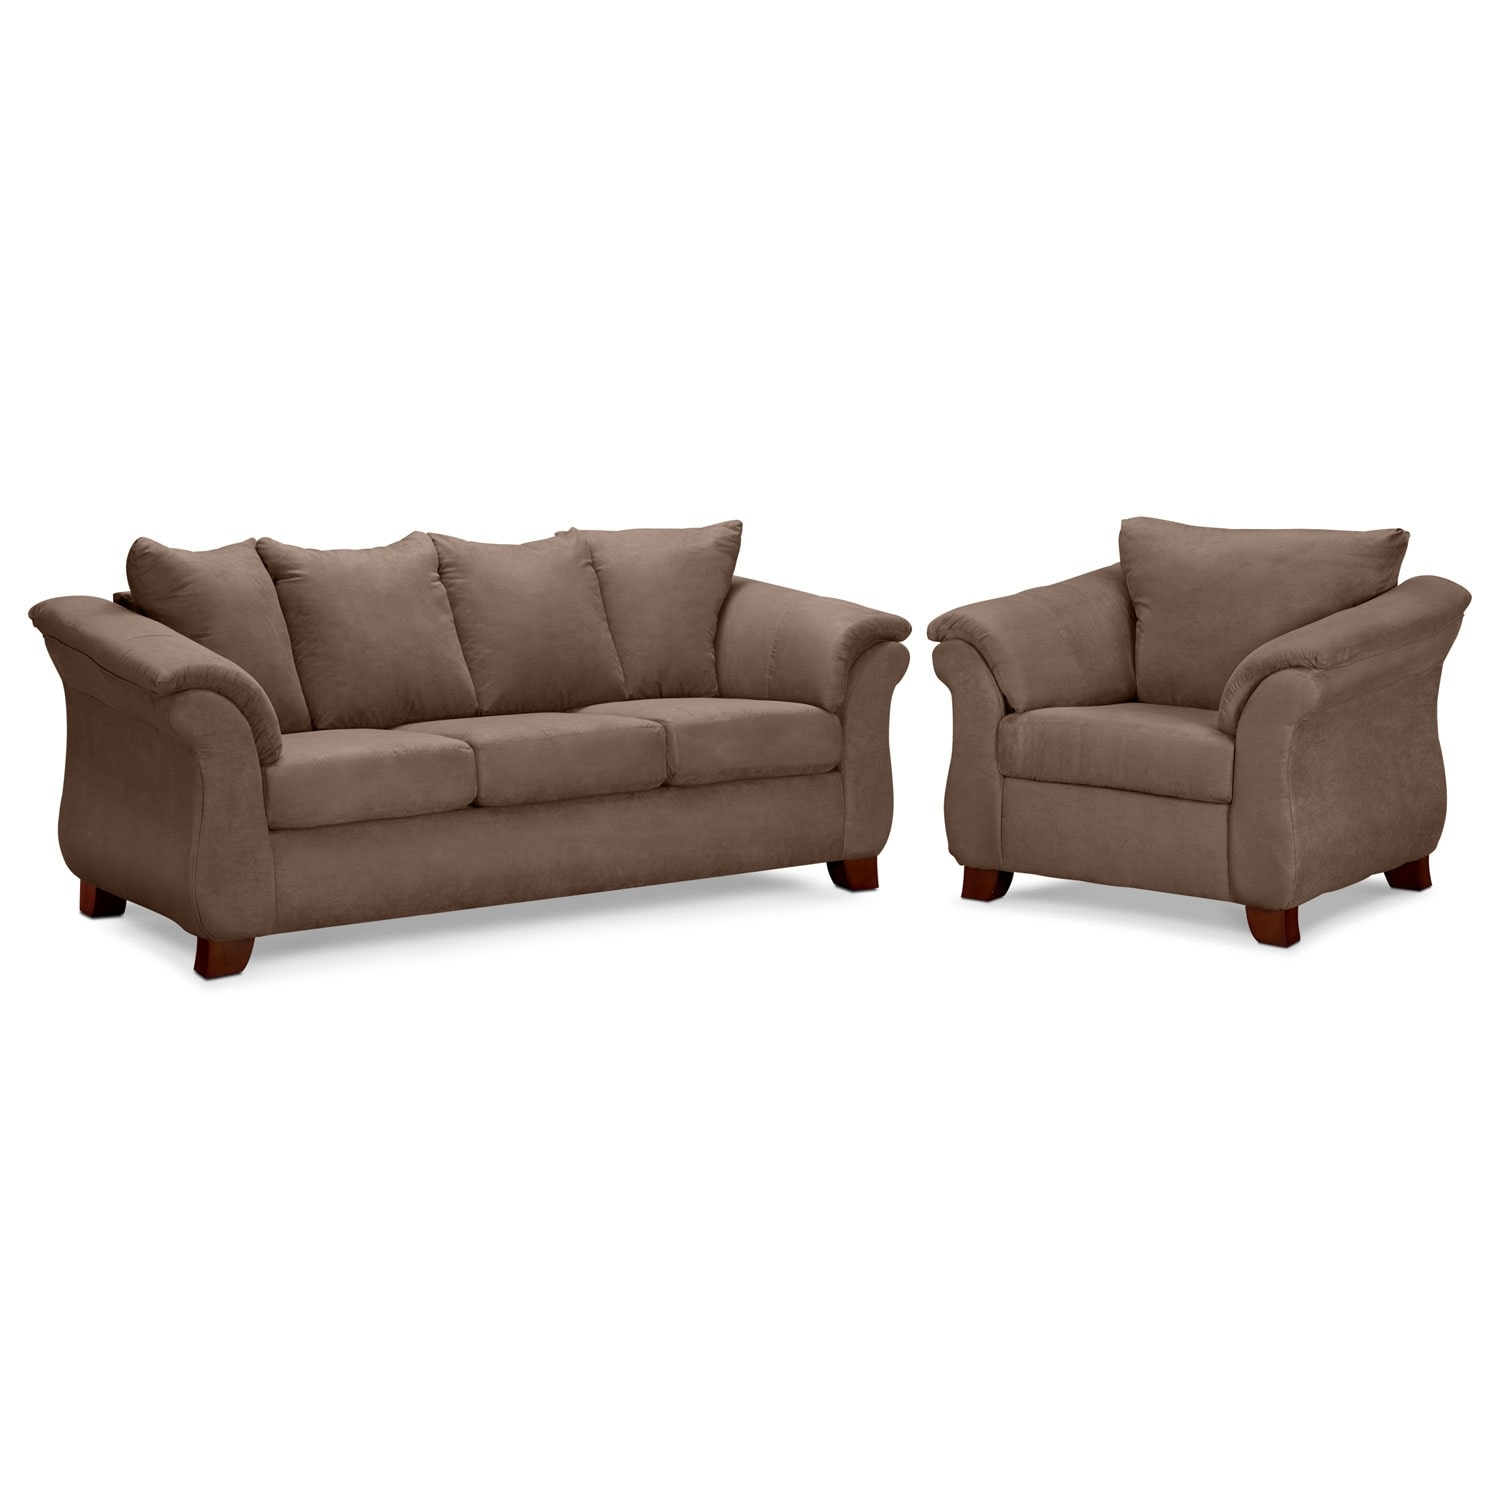 Adrian sofa and chair set taupe value city furniture for Living furniture packages